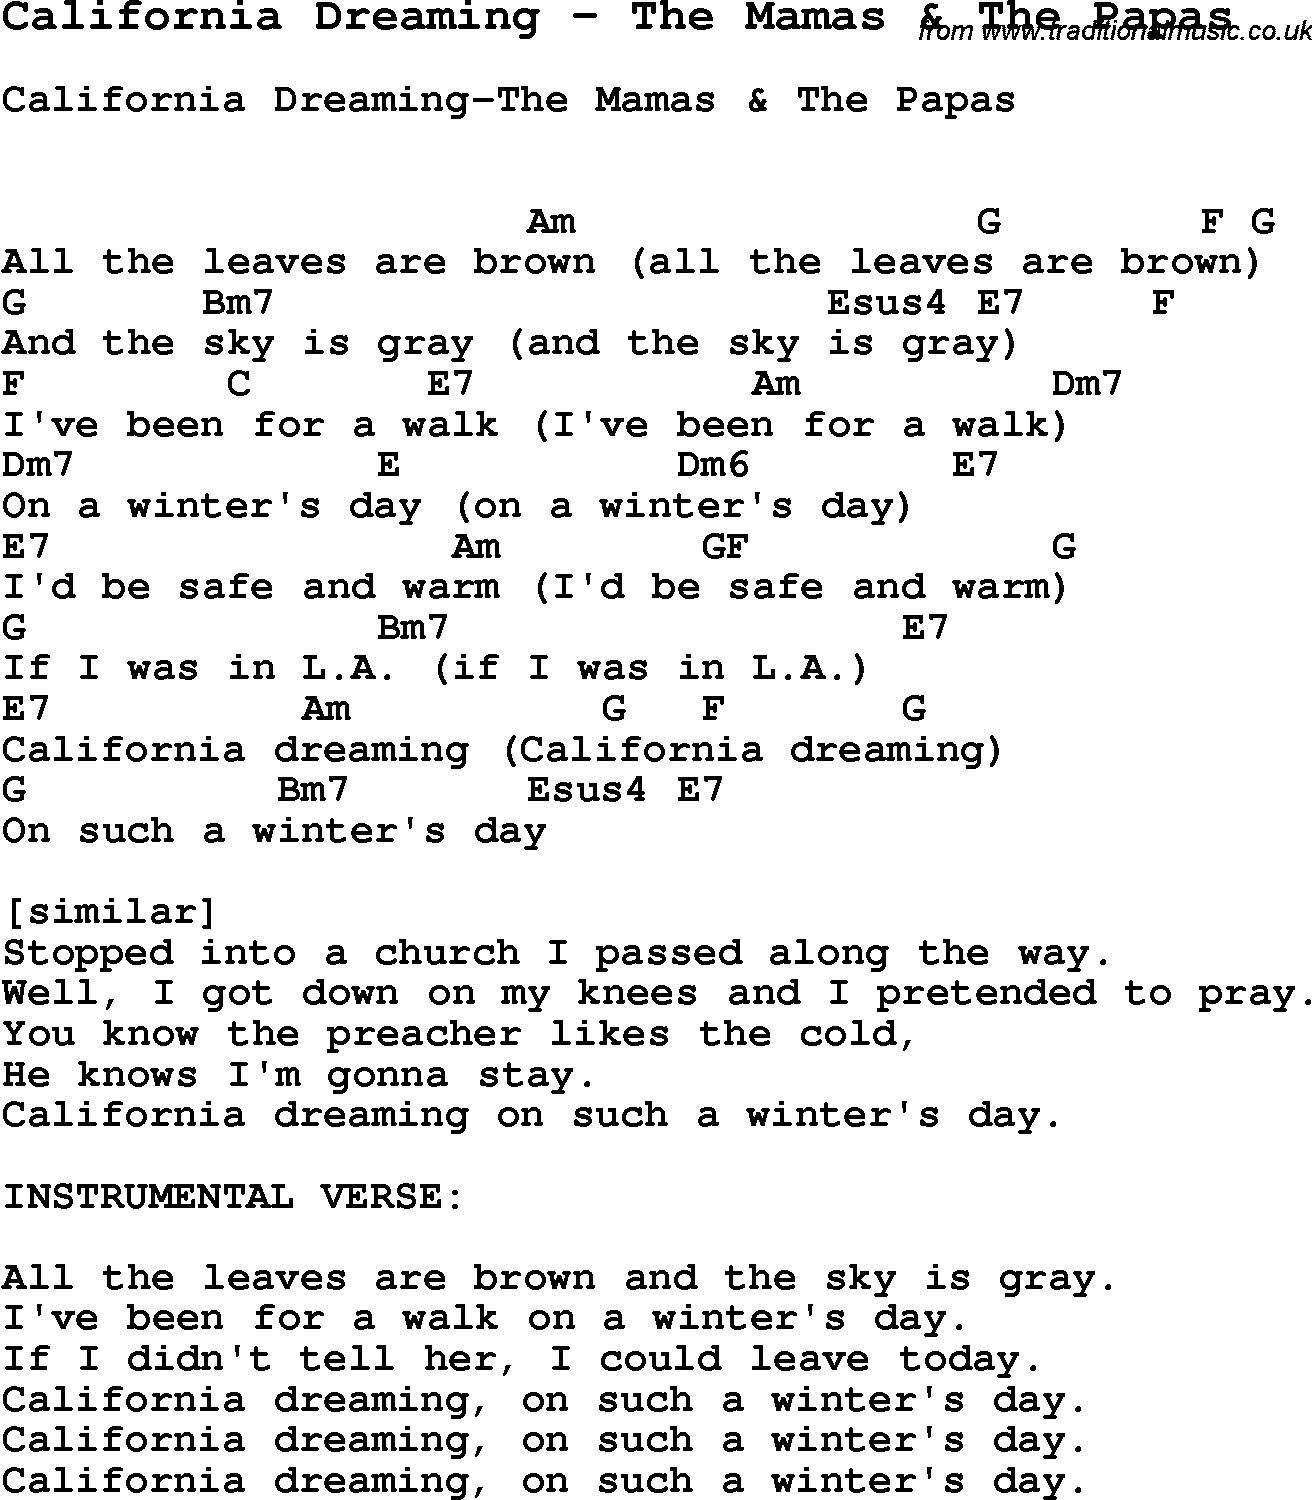 Song california dreaming by the mamas the papas with lyrics for song california dreaming by the mamas the papas song lyric for vocal performance plus accompaniment chords for ukulele guitar banjo etc hexwebz Gallery